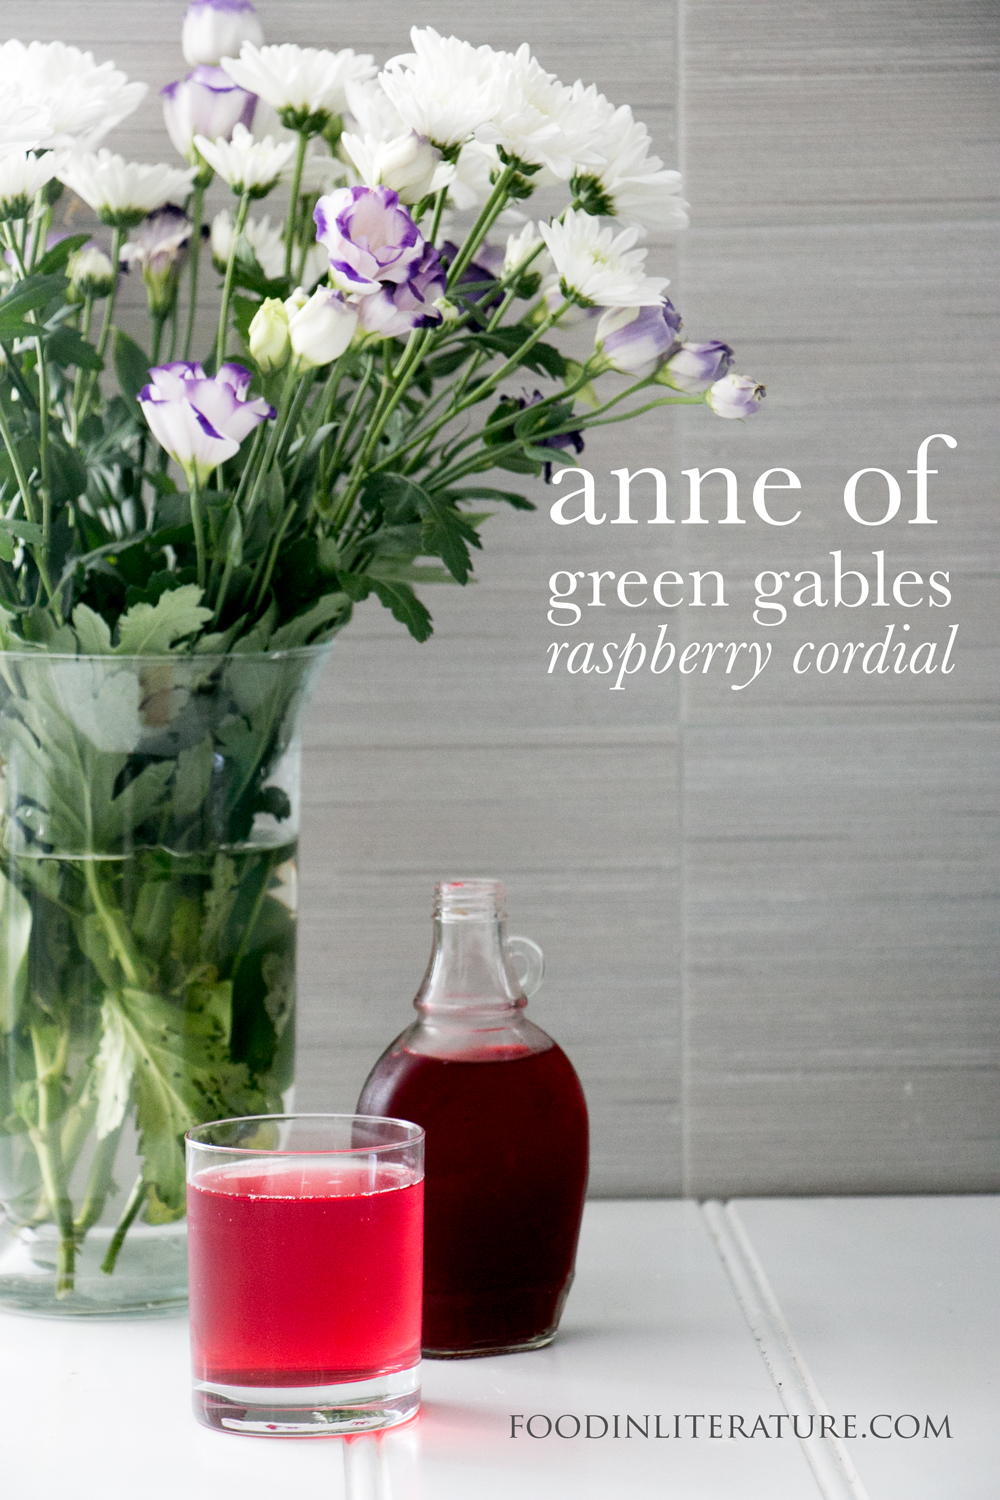 This easy raspberry cordial recipe will take you straight back to your favourite childhood memories of Anne of Green Gables